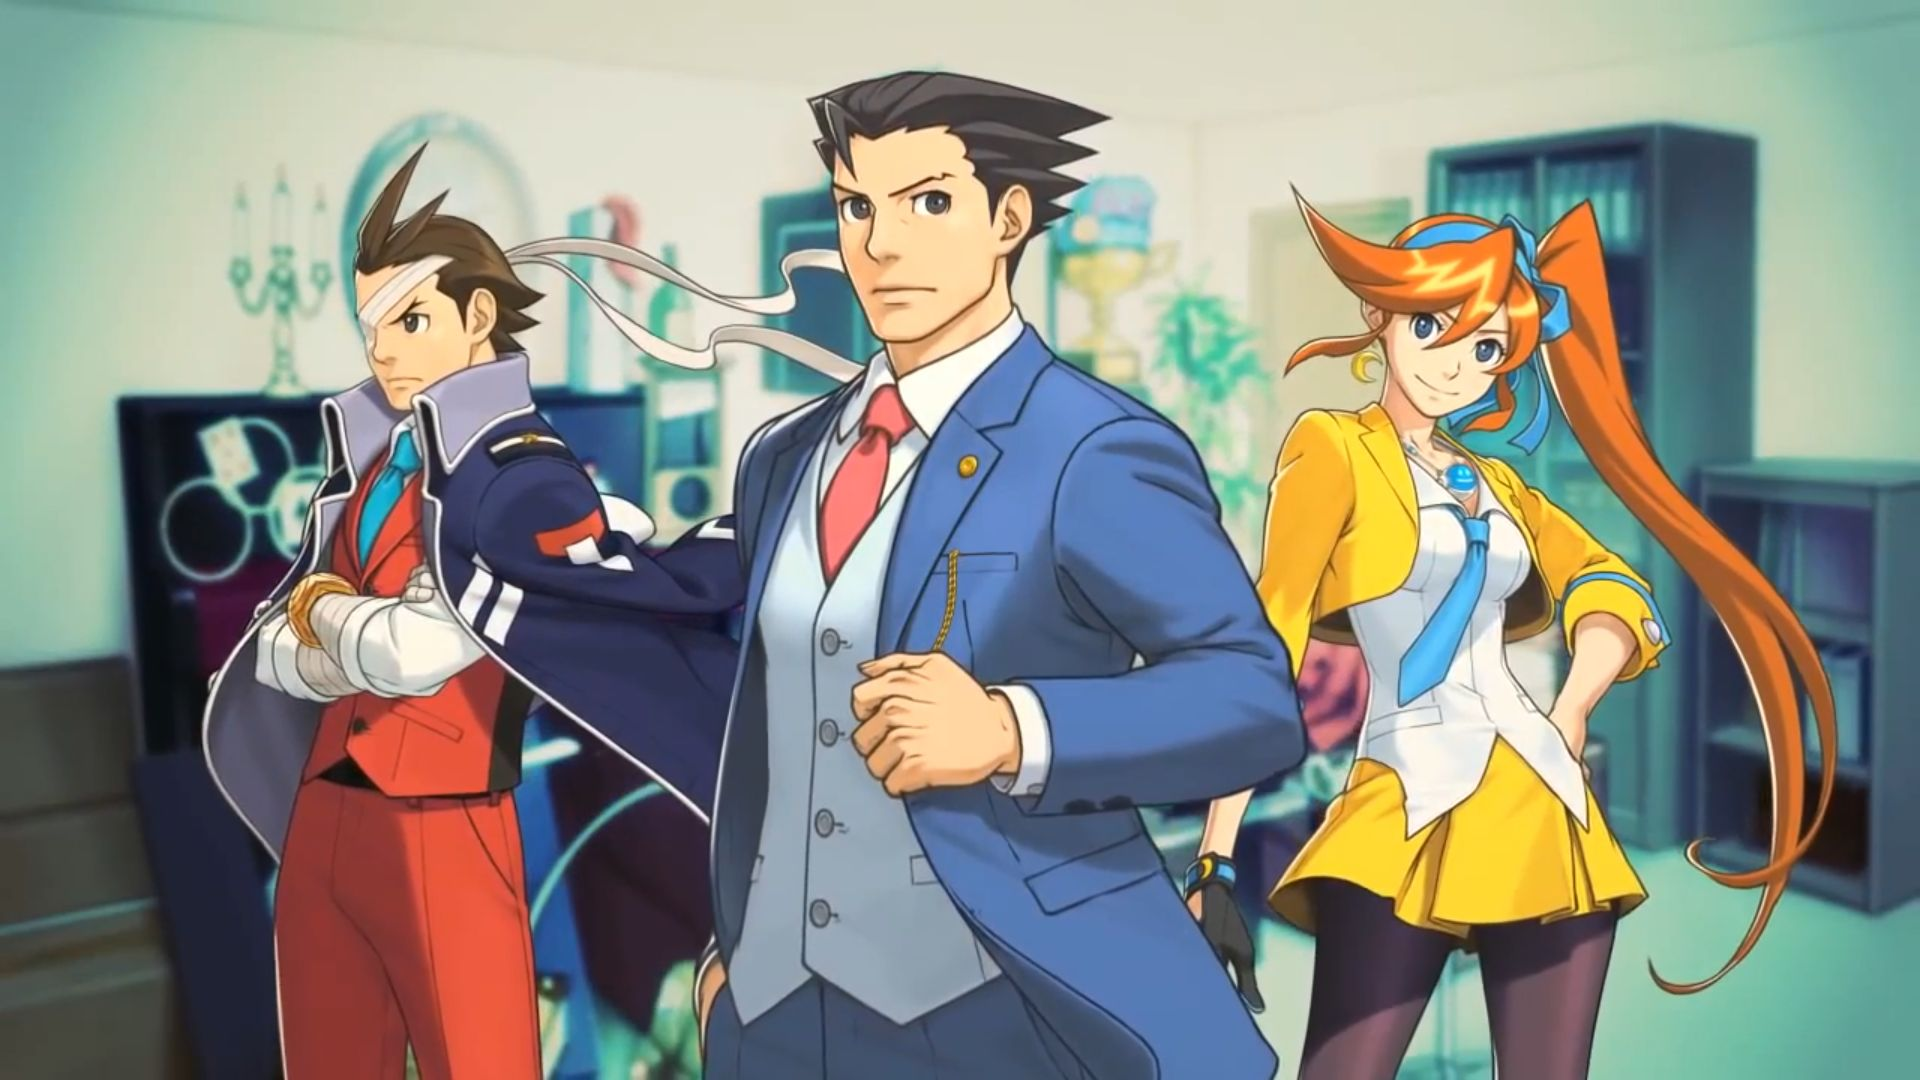 phoenix wright ace attorney dual destinies wallpaper hd anime picture 1920x1080